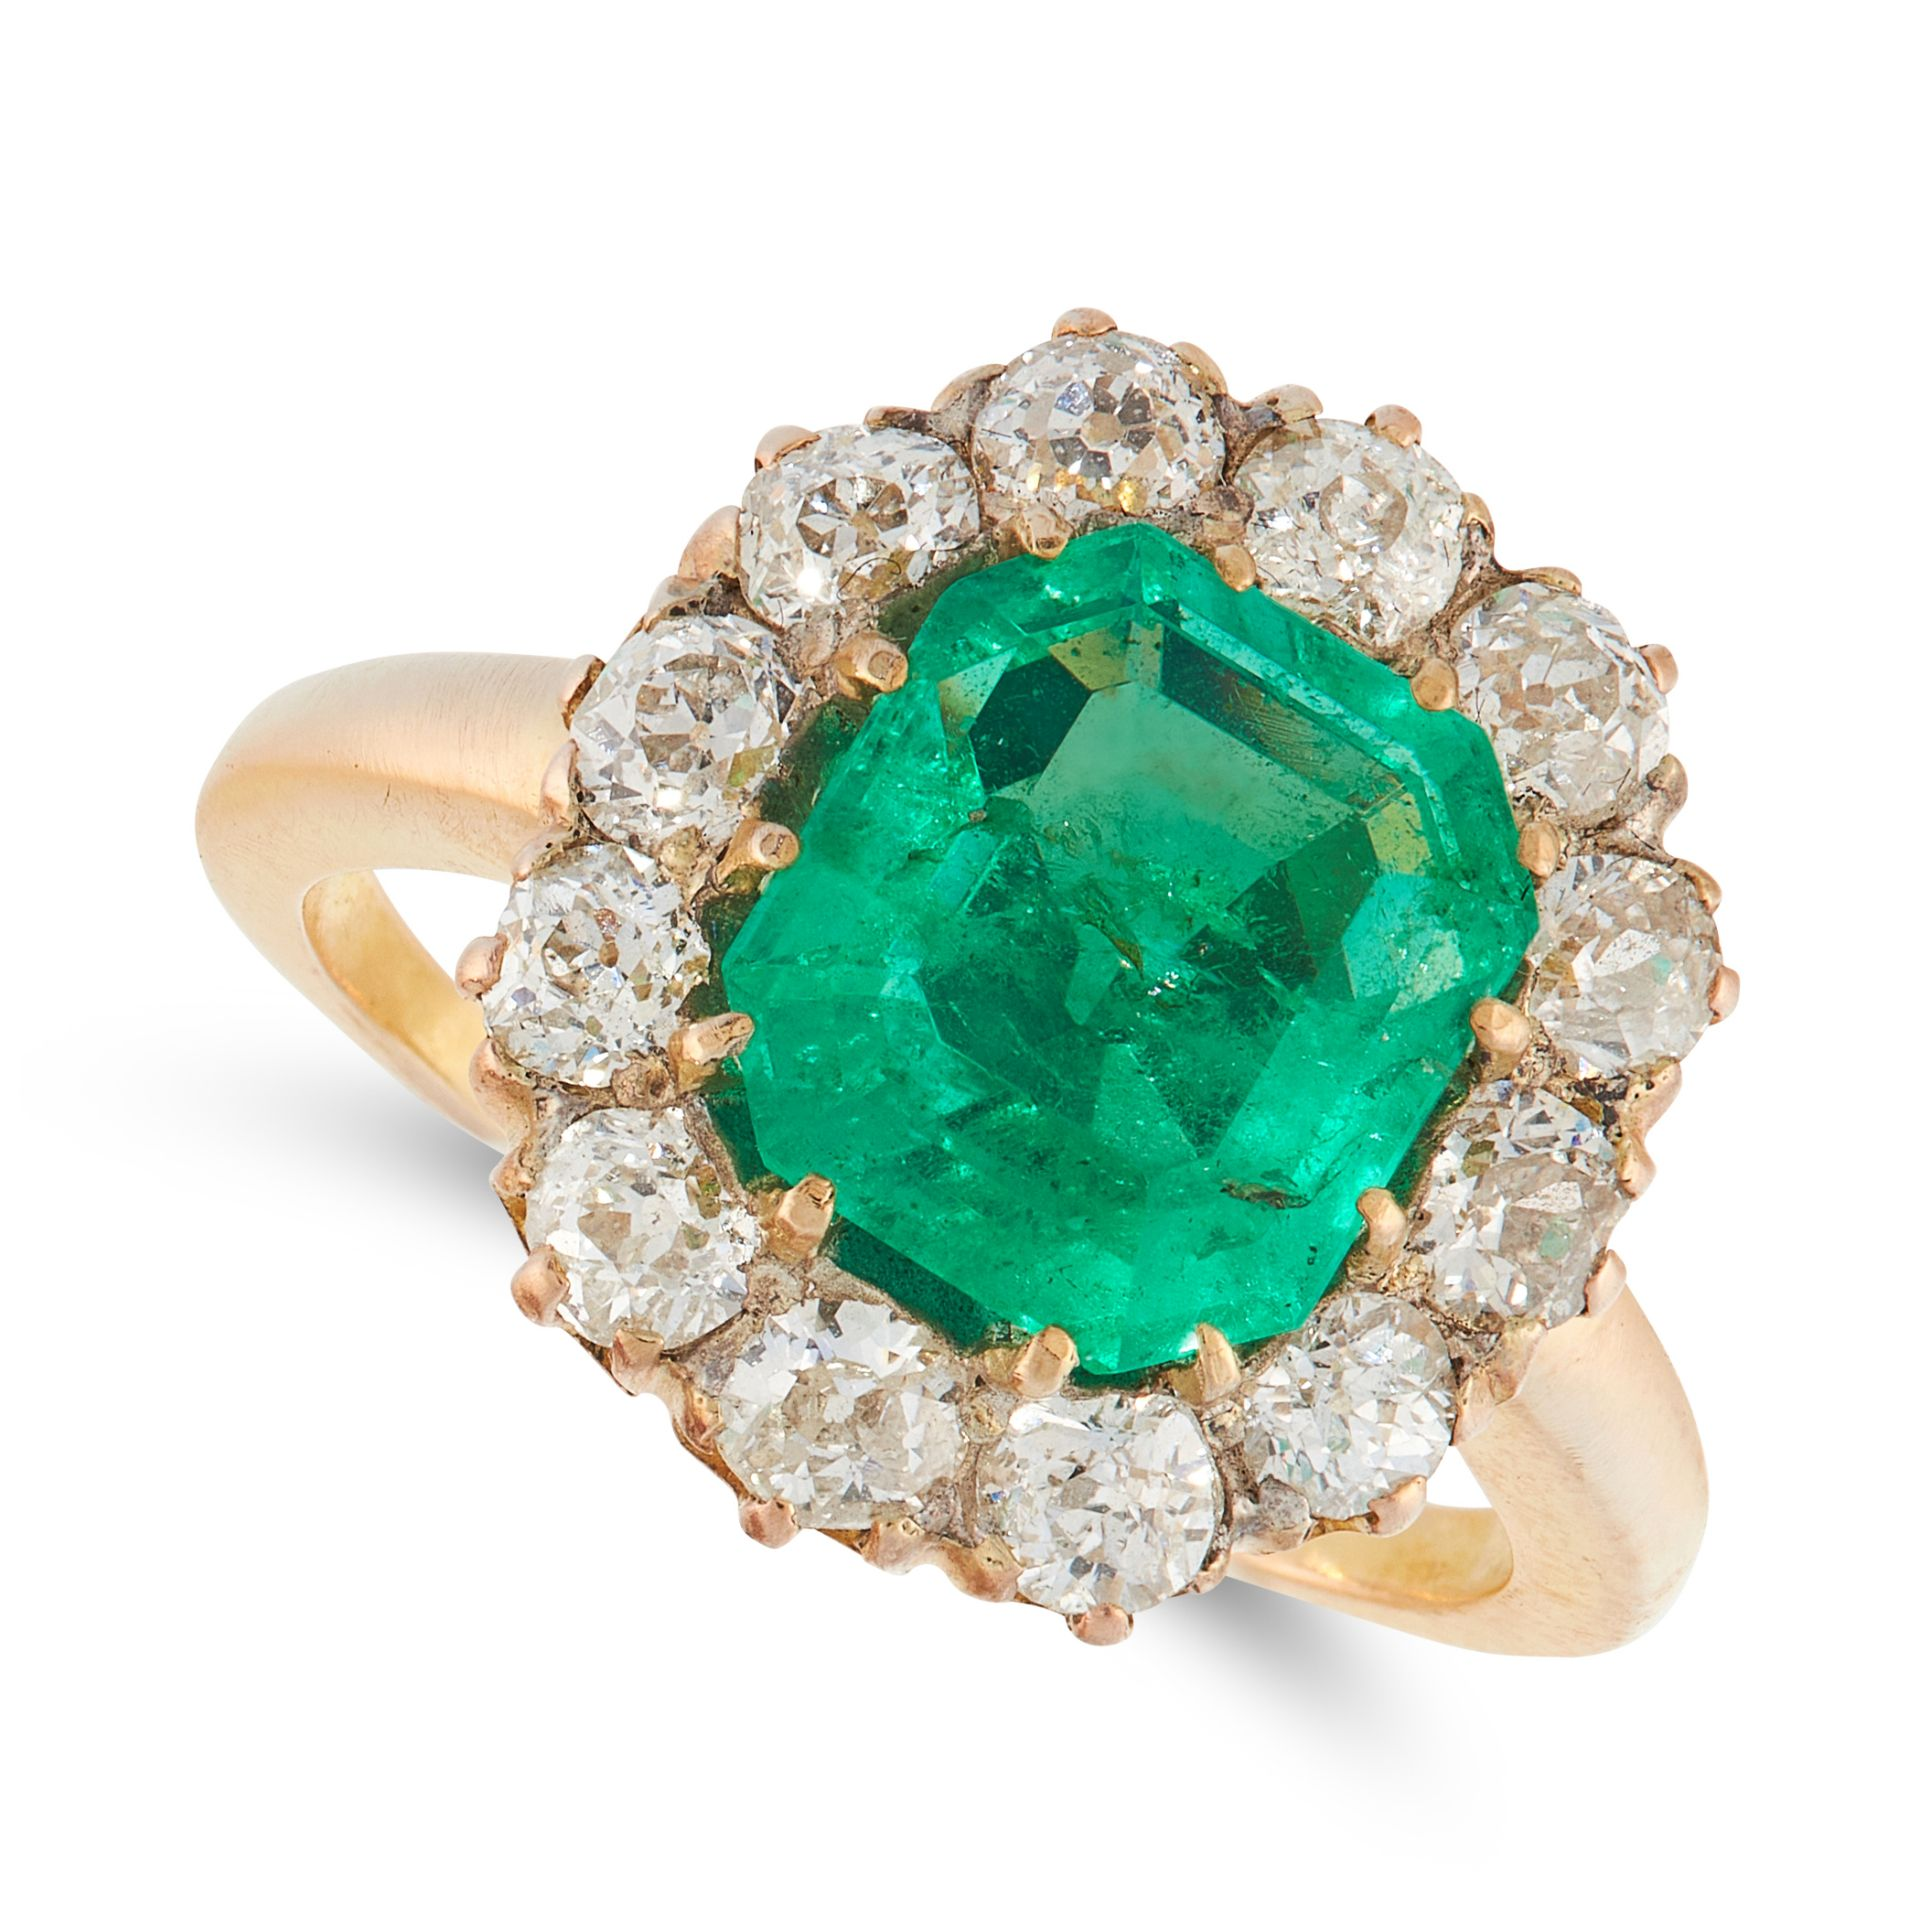 A COLOMBIAN EMERALD AND DIAMOND RING, EARLY 20TH CENTURY in 18ct yellow gold, set with an emerald